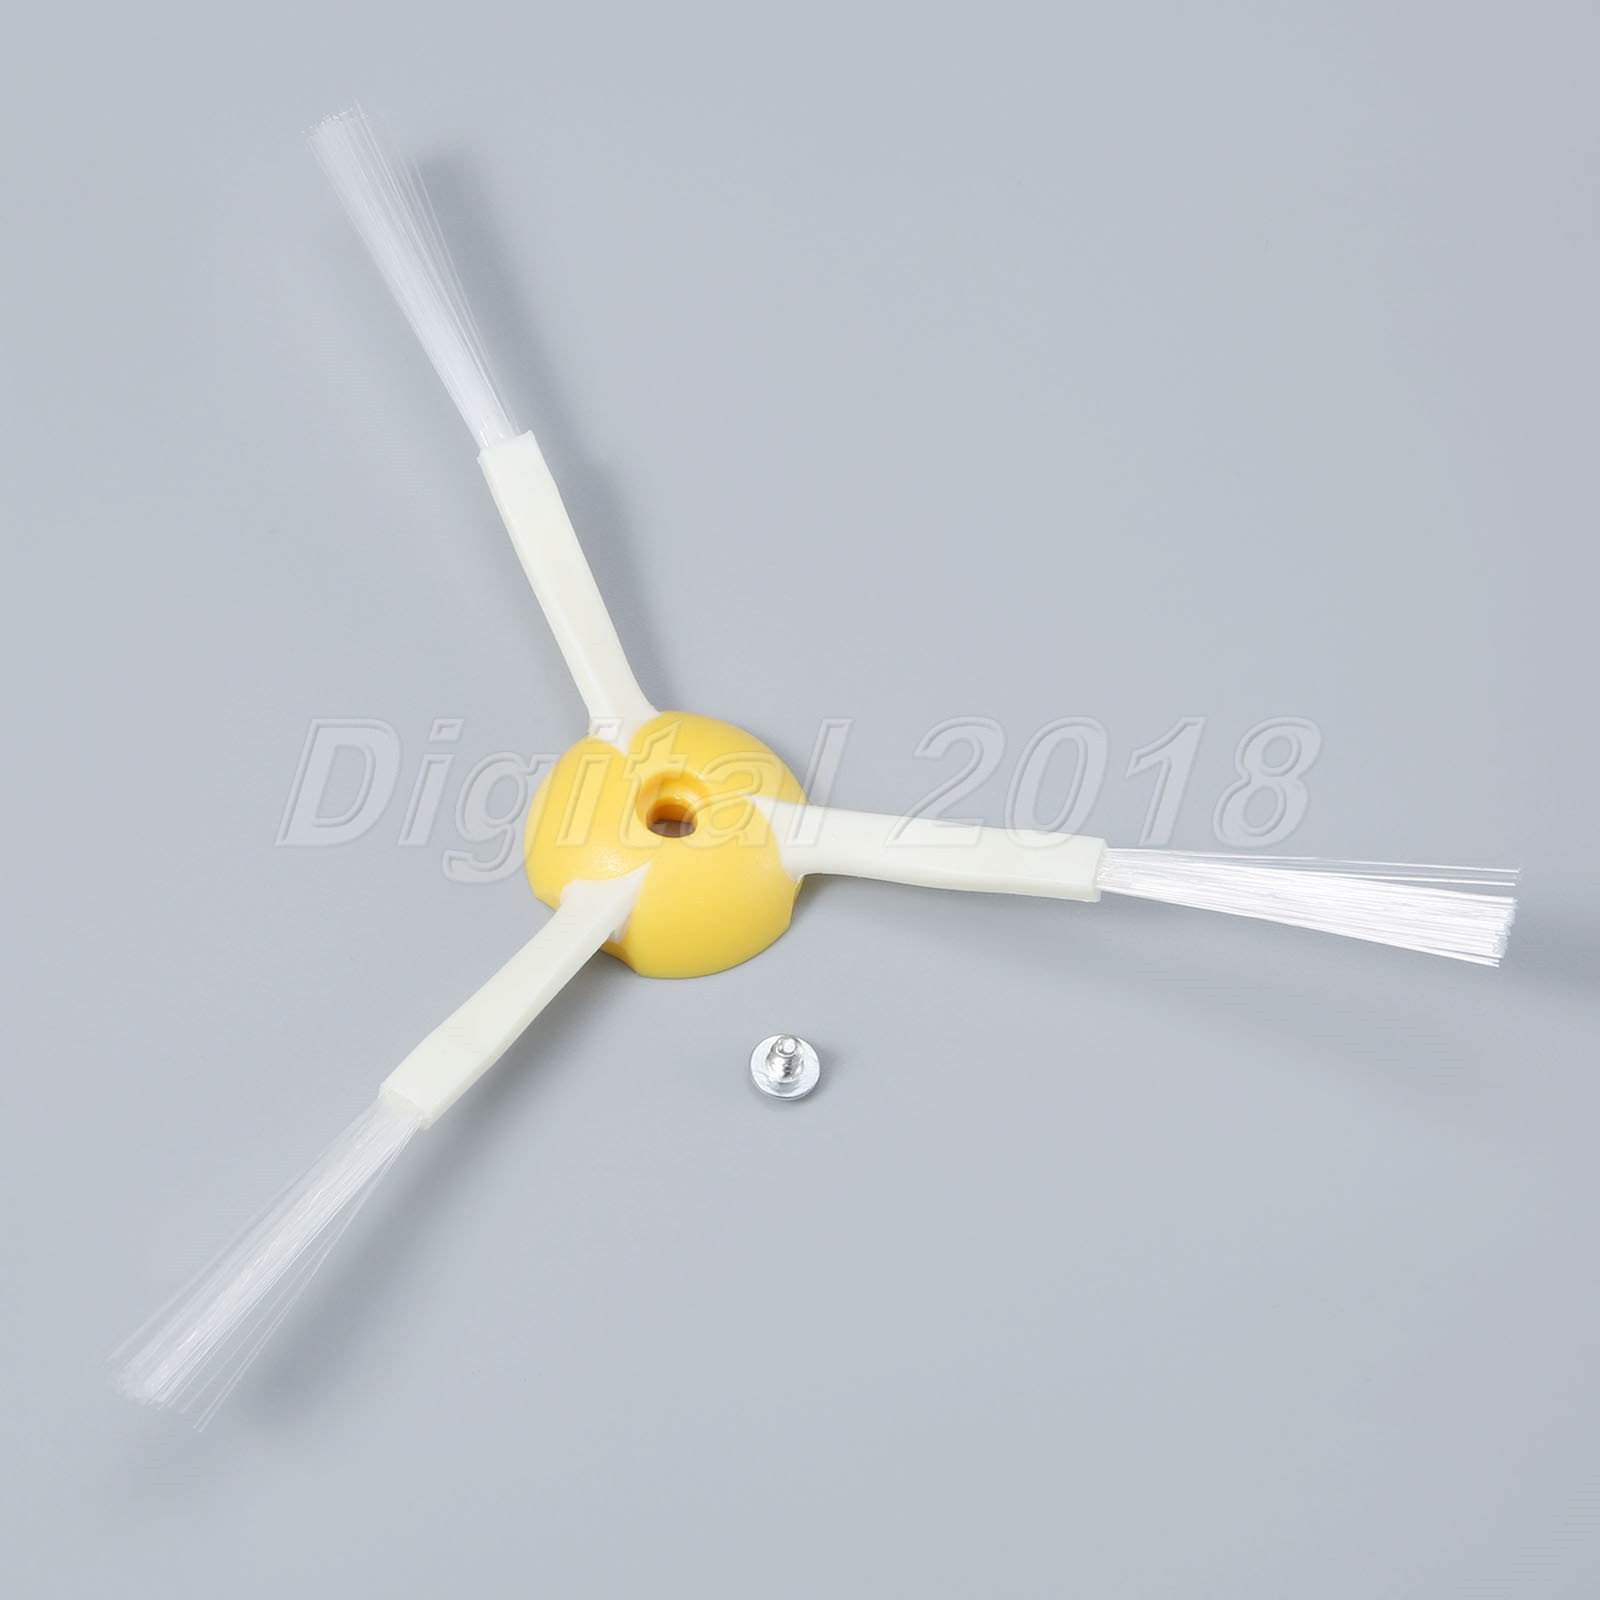 Vacuum Cleaner Parts 3-Armed Side Brush Fit For iRobot Roomba 500 600 700 Series